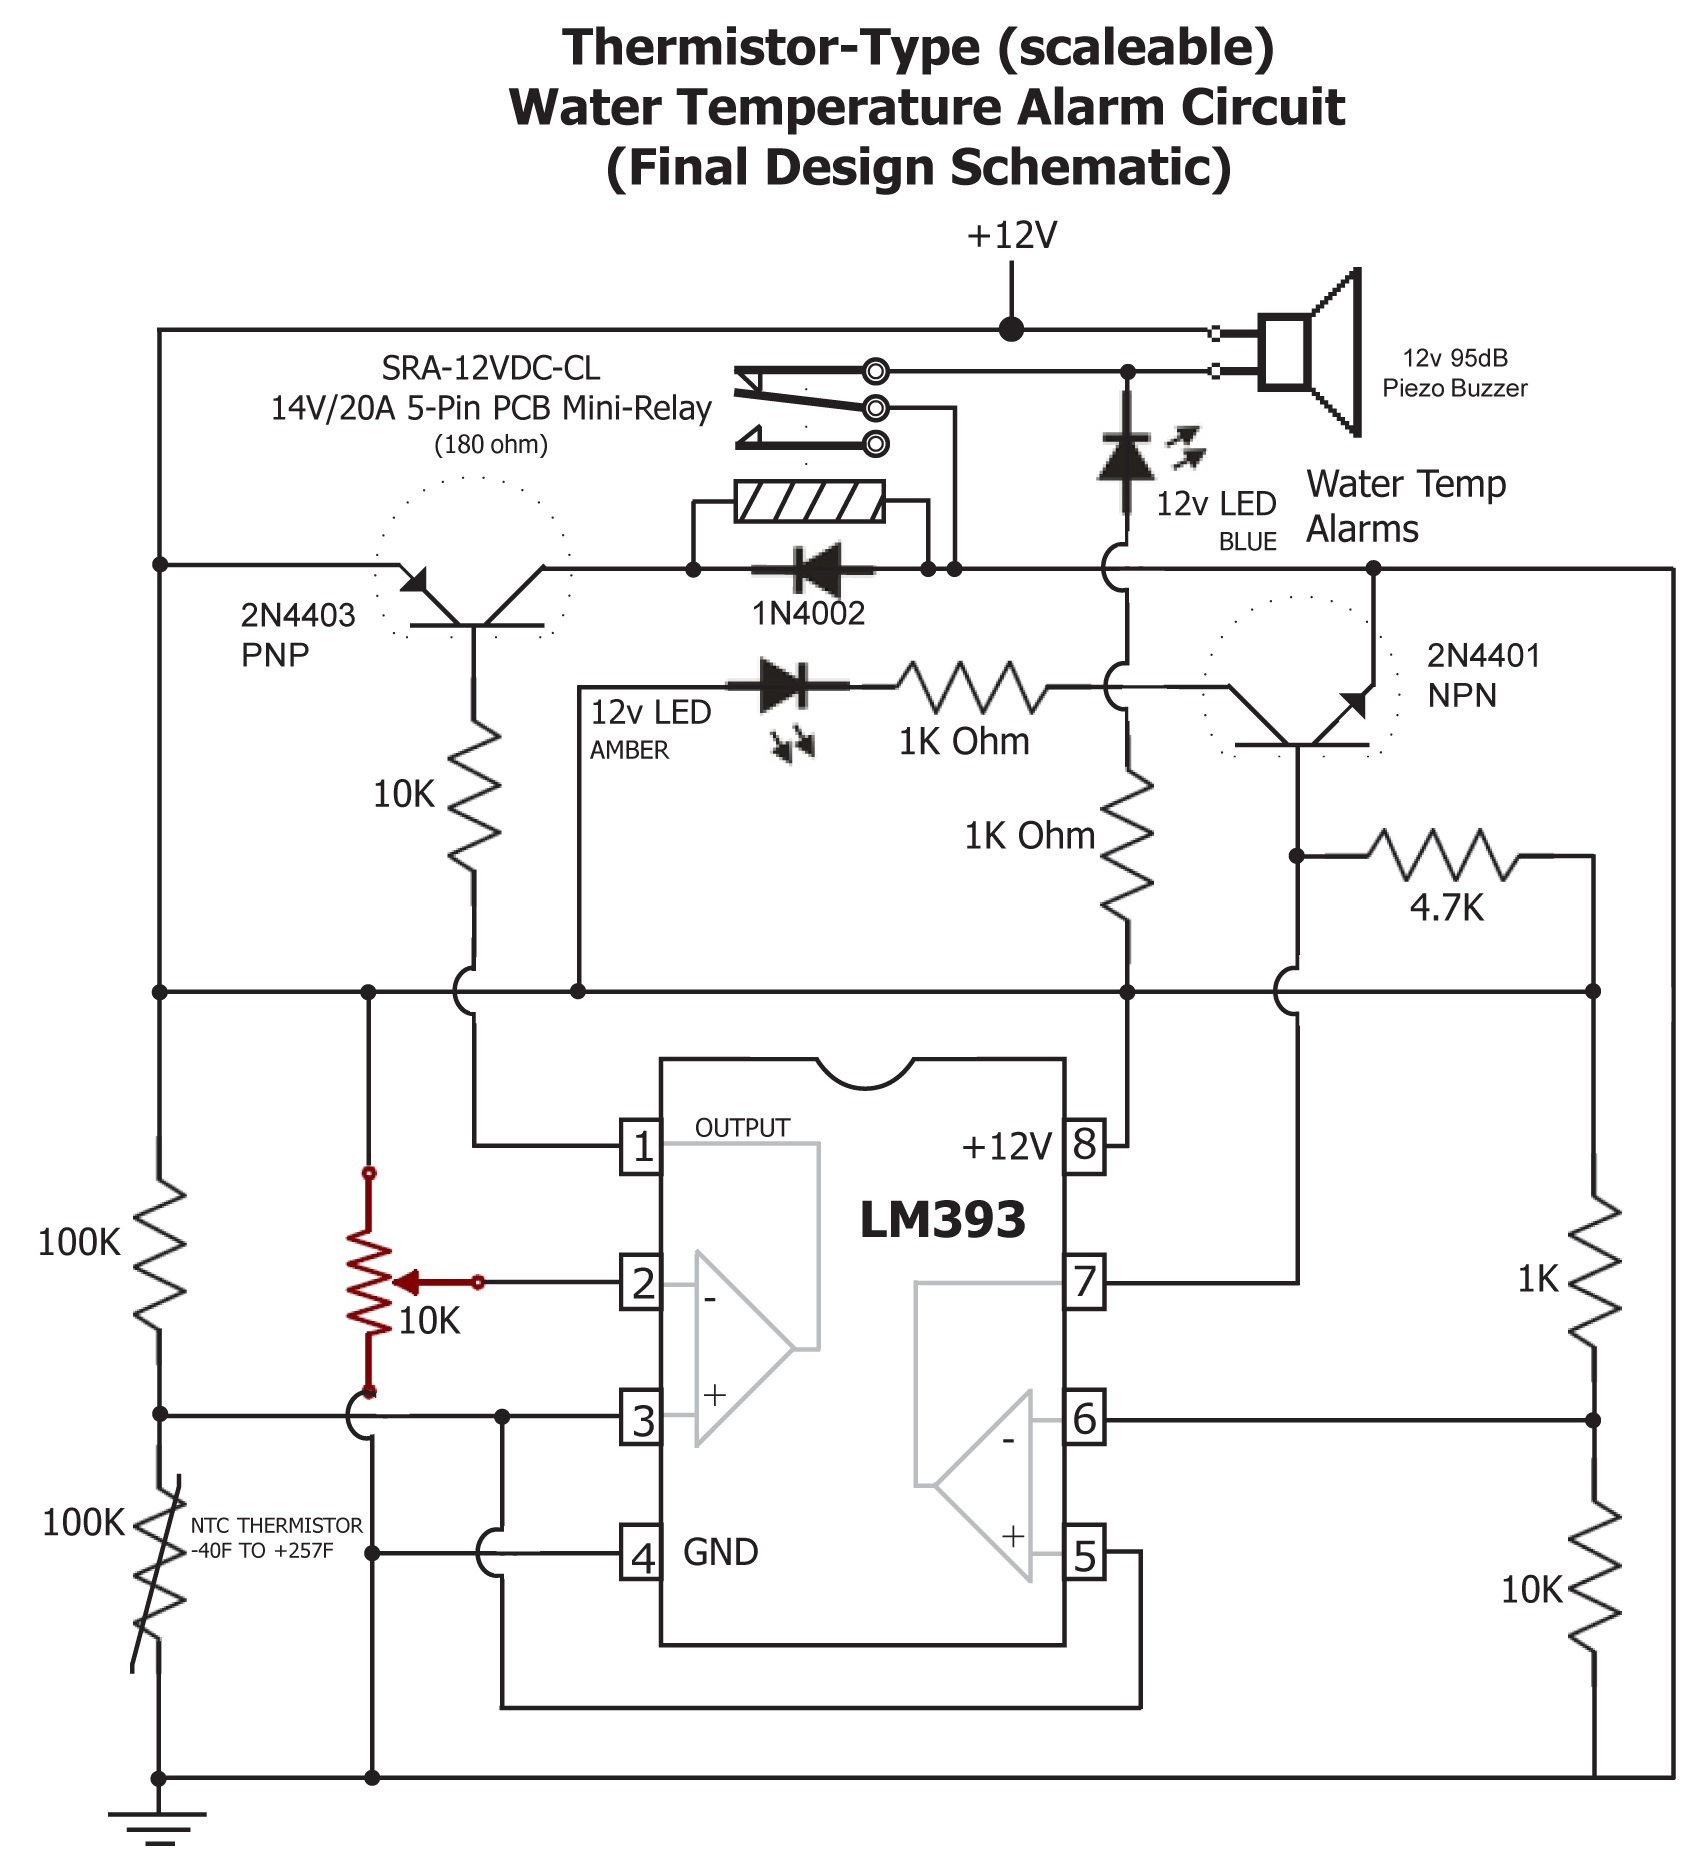 critical systems warning circuit rh devestechnet com Simple Thermistor Circuit Diagram Fujitsu Thermistor Wiring-Diagram